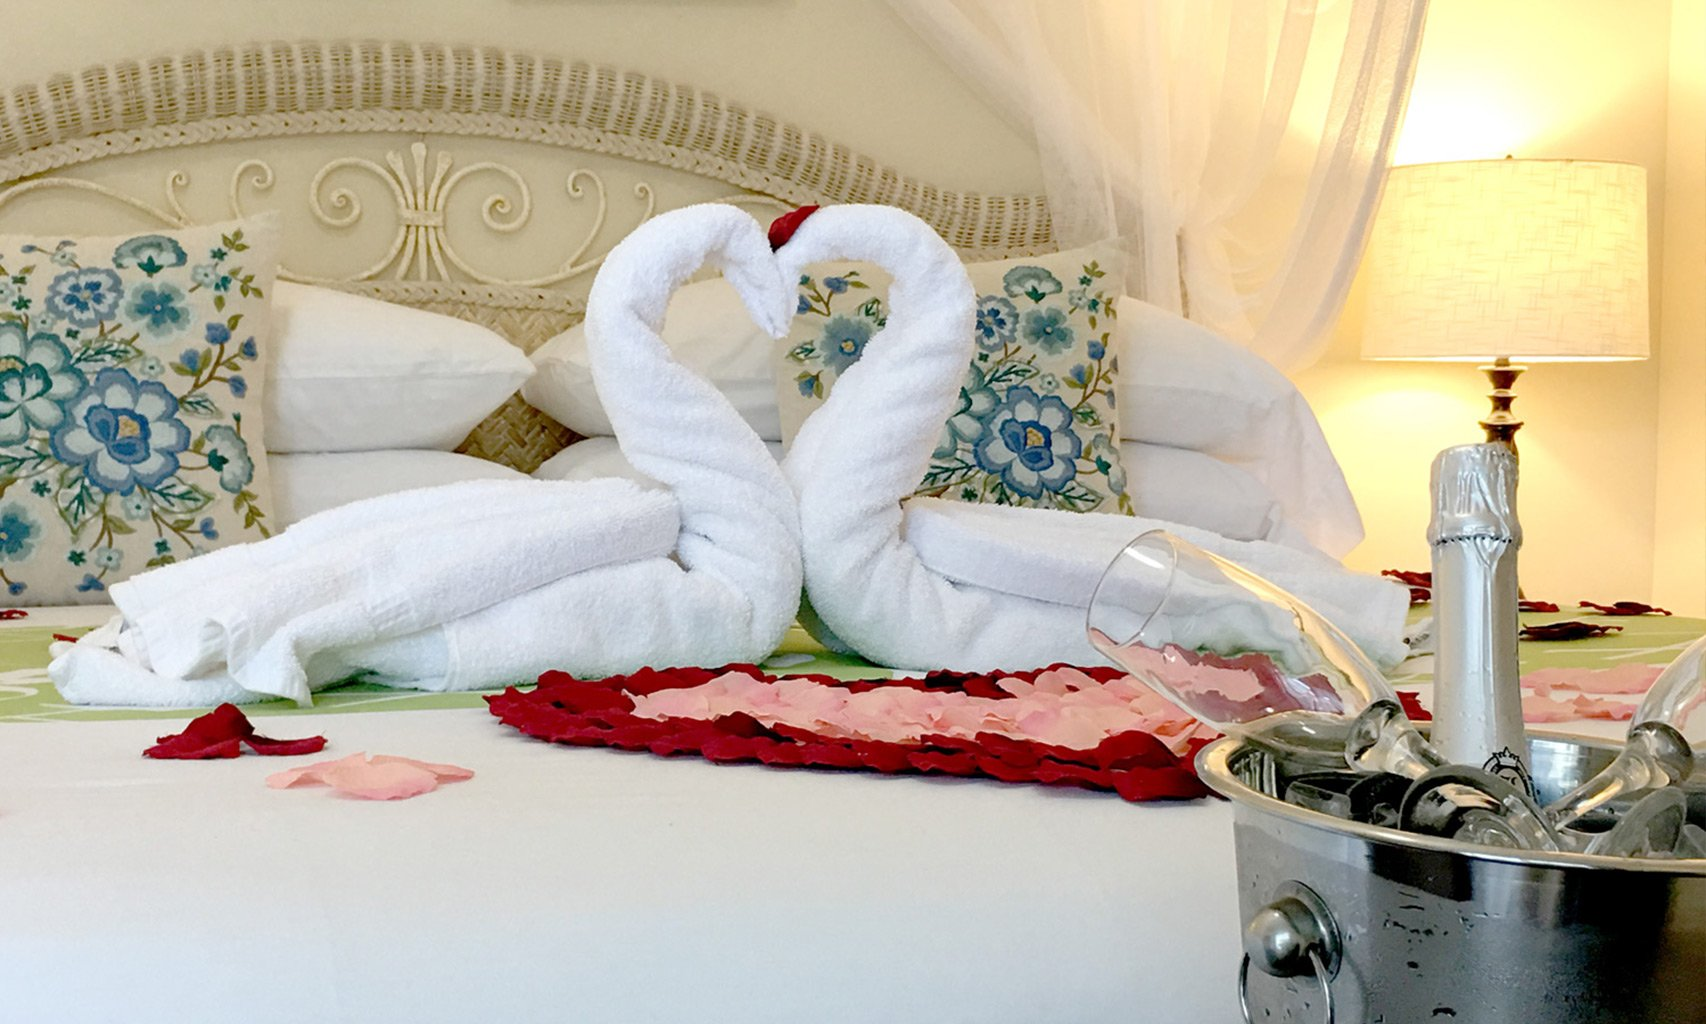 Towels folded into a pair of swans on a bed